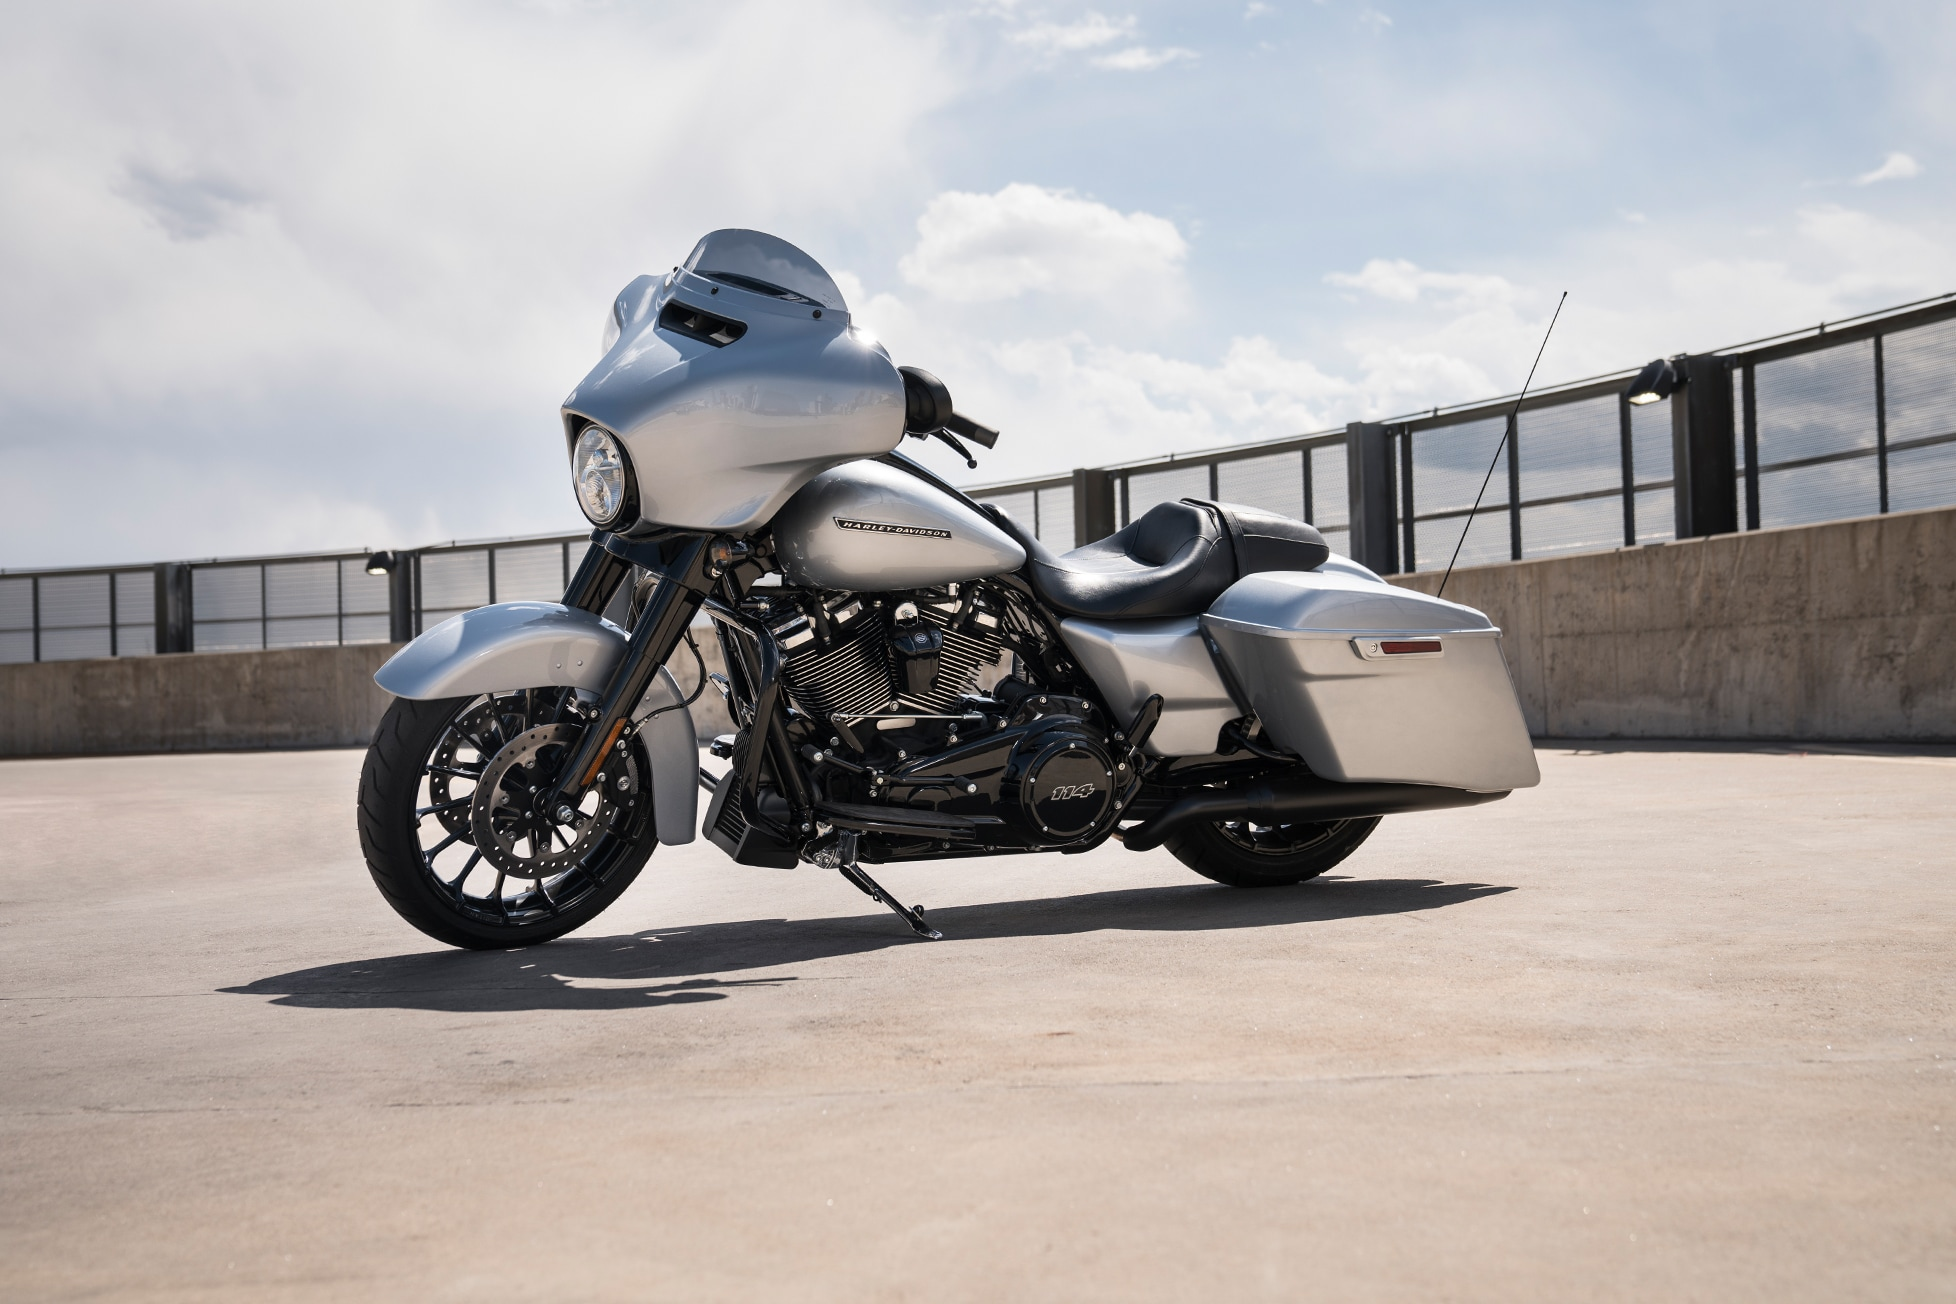 medium resolution of 2019 street glide special parked on street